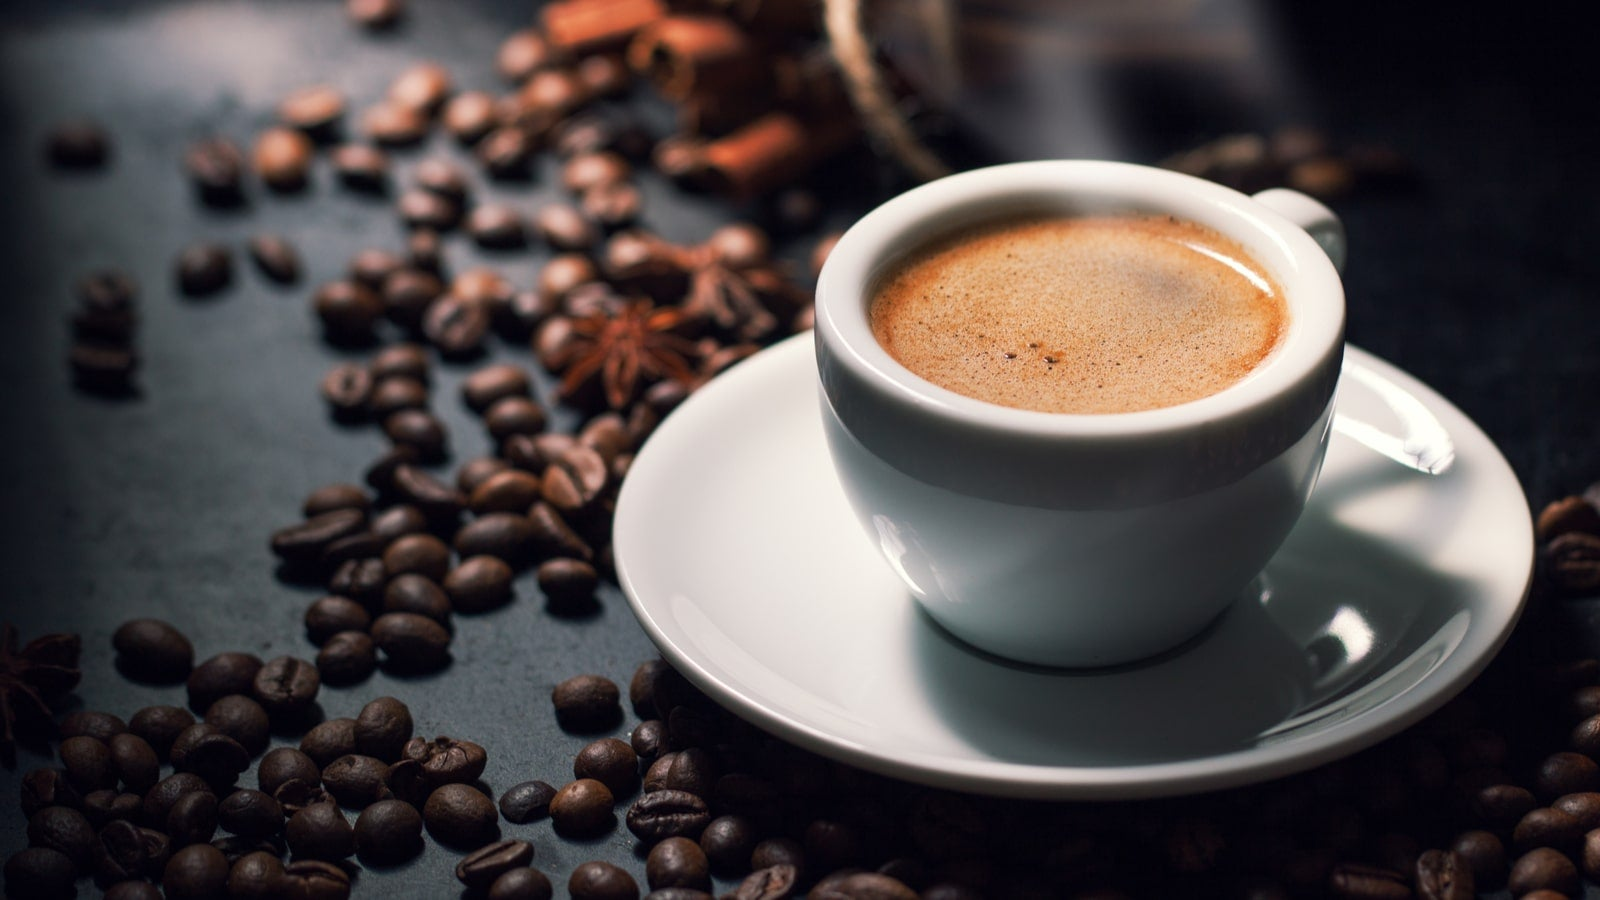 A hot cup of espresso surrounded by coffee beans